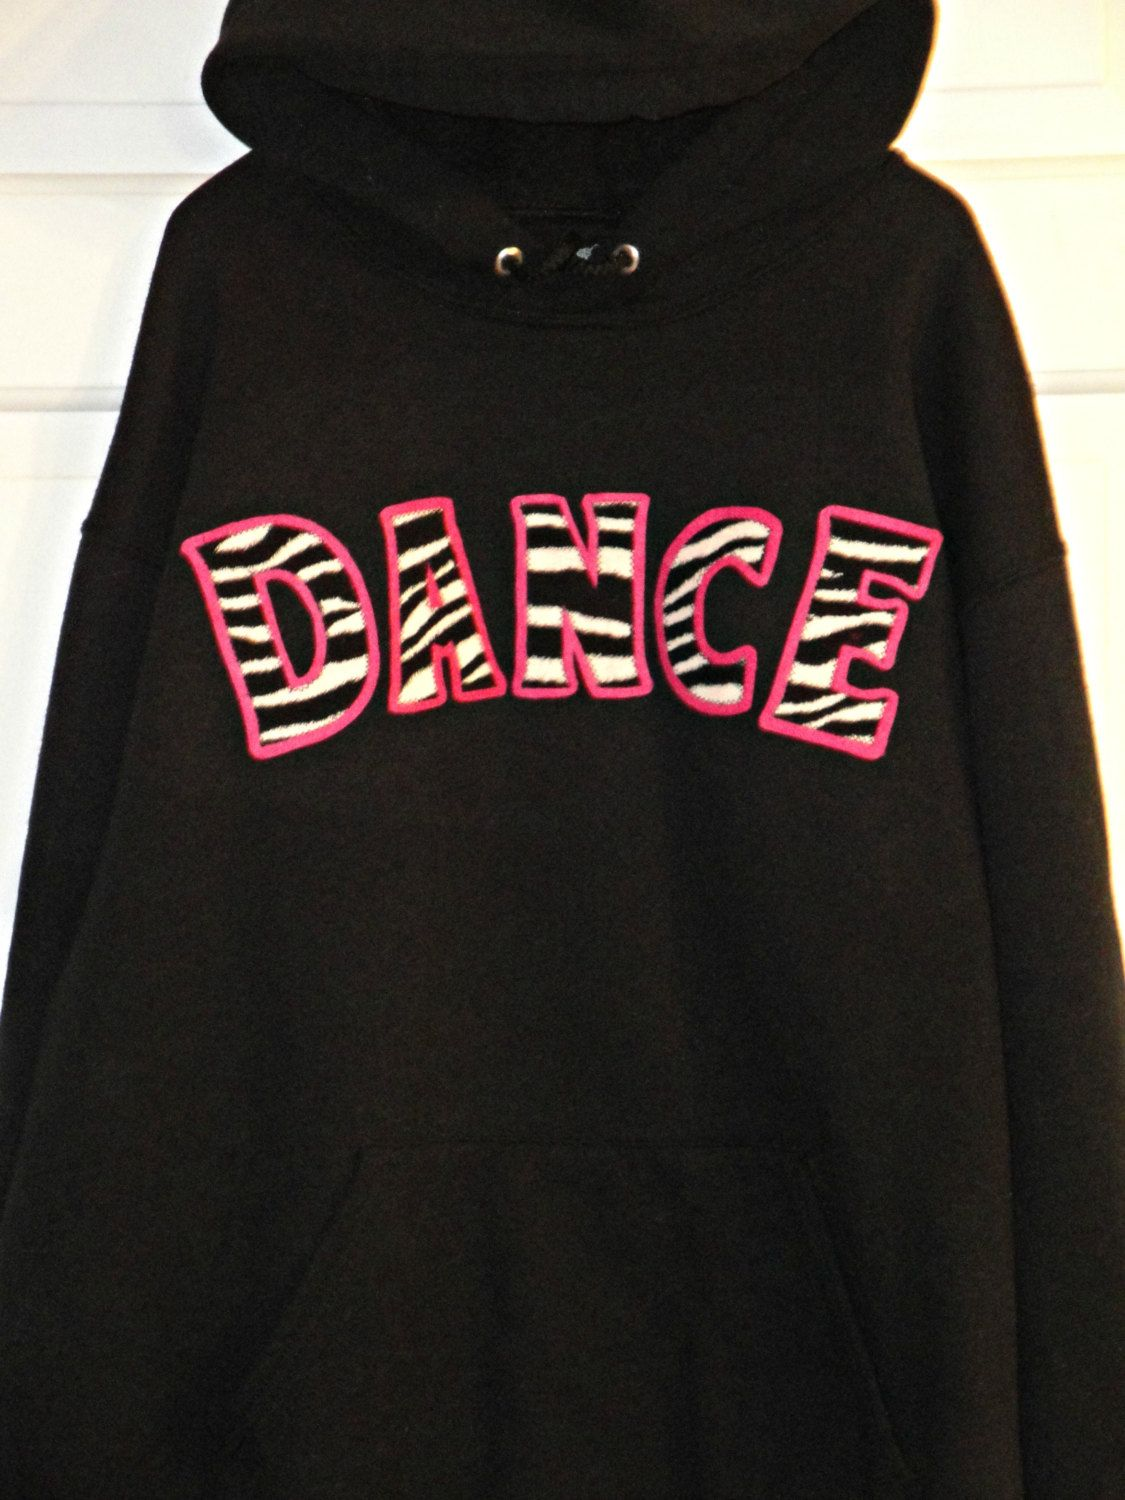 f2c4694bb6d Dance Hoodie. Womens Dance Hoodie. Juniors Hoodie. Zebra Print Hoodie.  Custom Hoodie. Dance Shirt. Girls Dance Shirt. Zebra Print Shirt. by  UniqueApplique ...